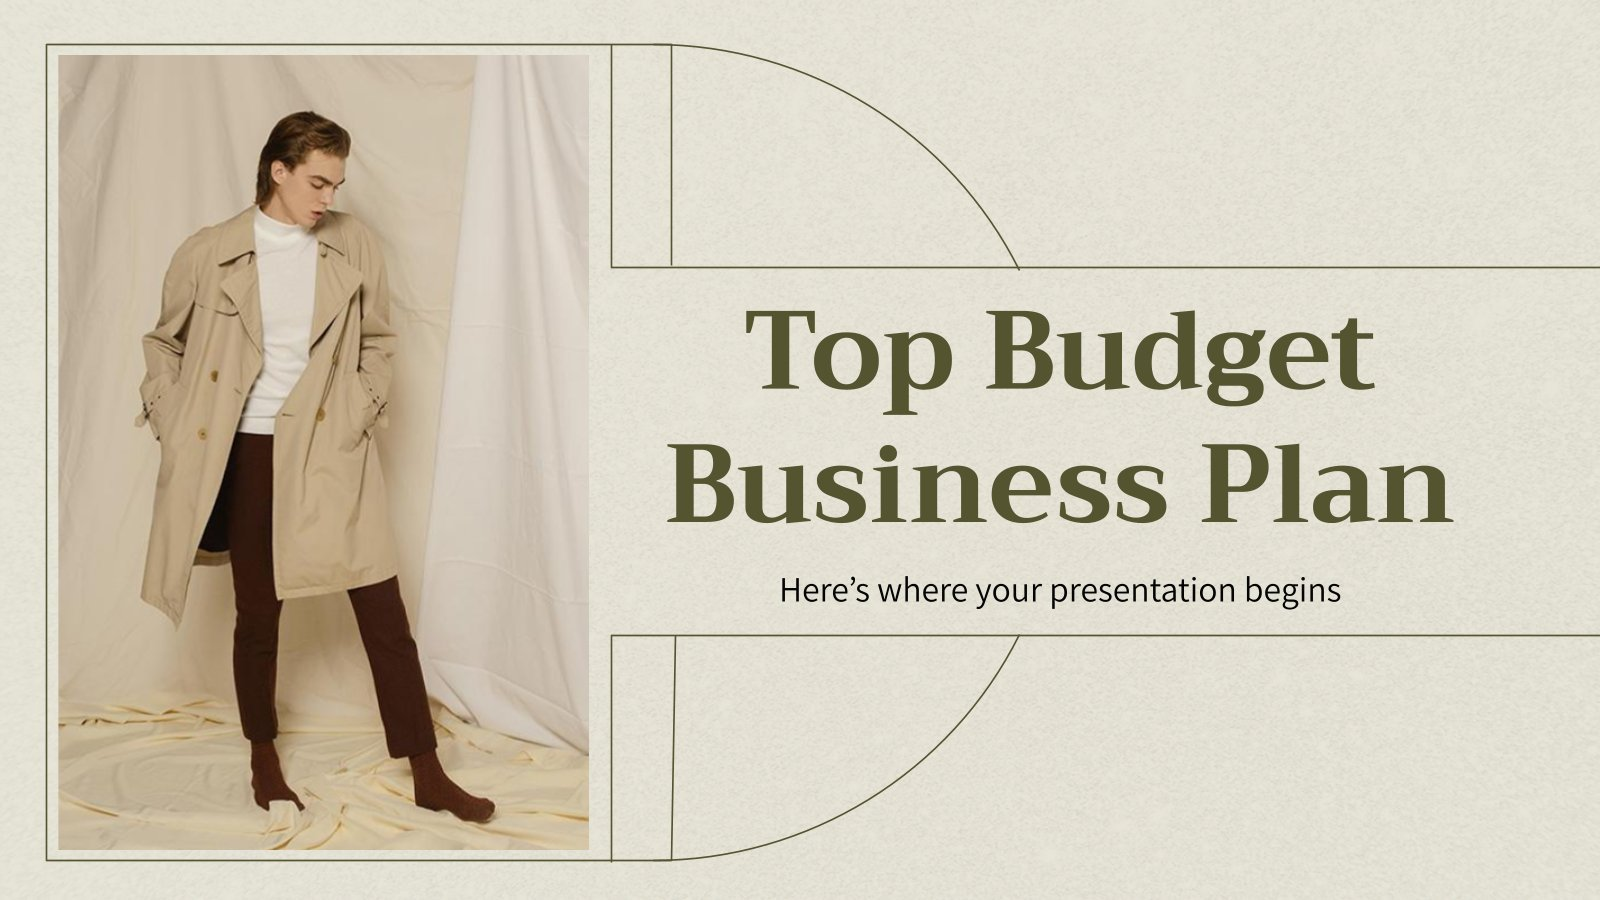 Top Budget Business Plan presentation template